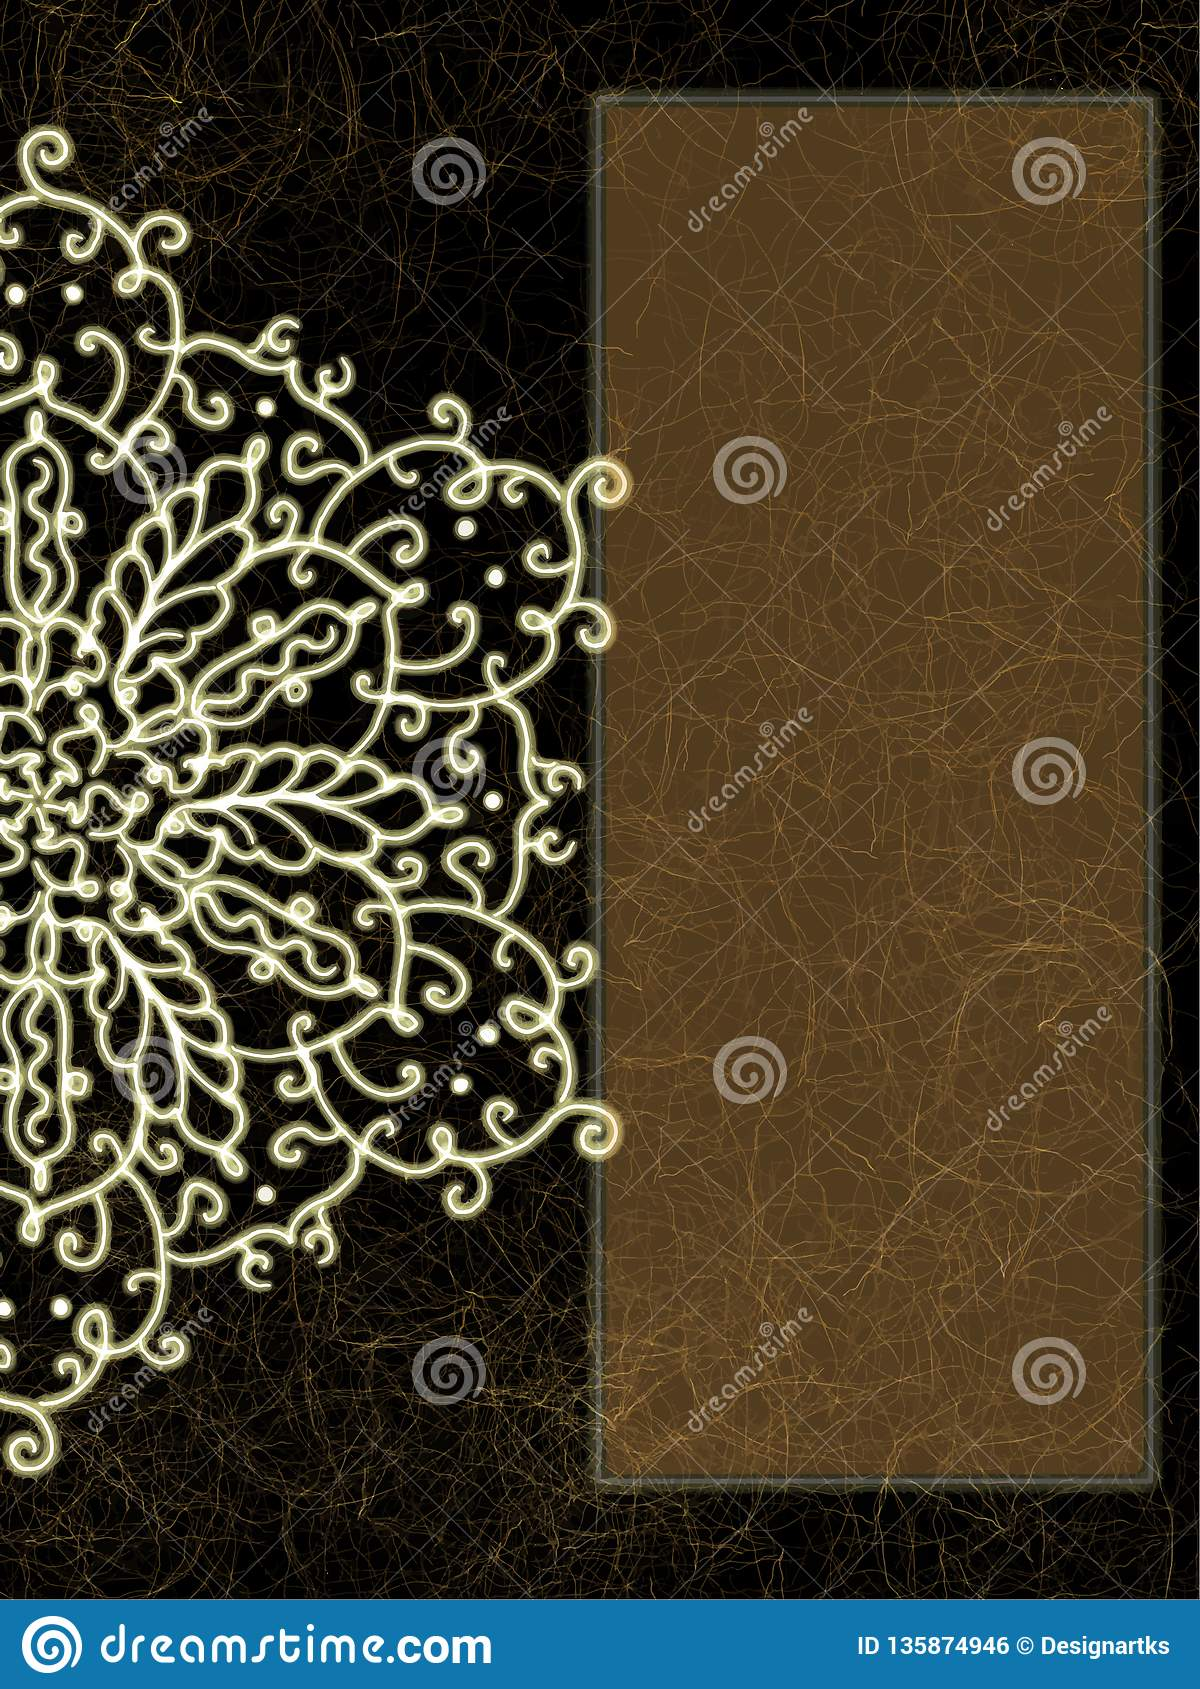 dark background and traditional pattern card textures